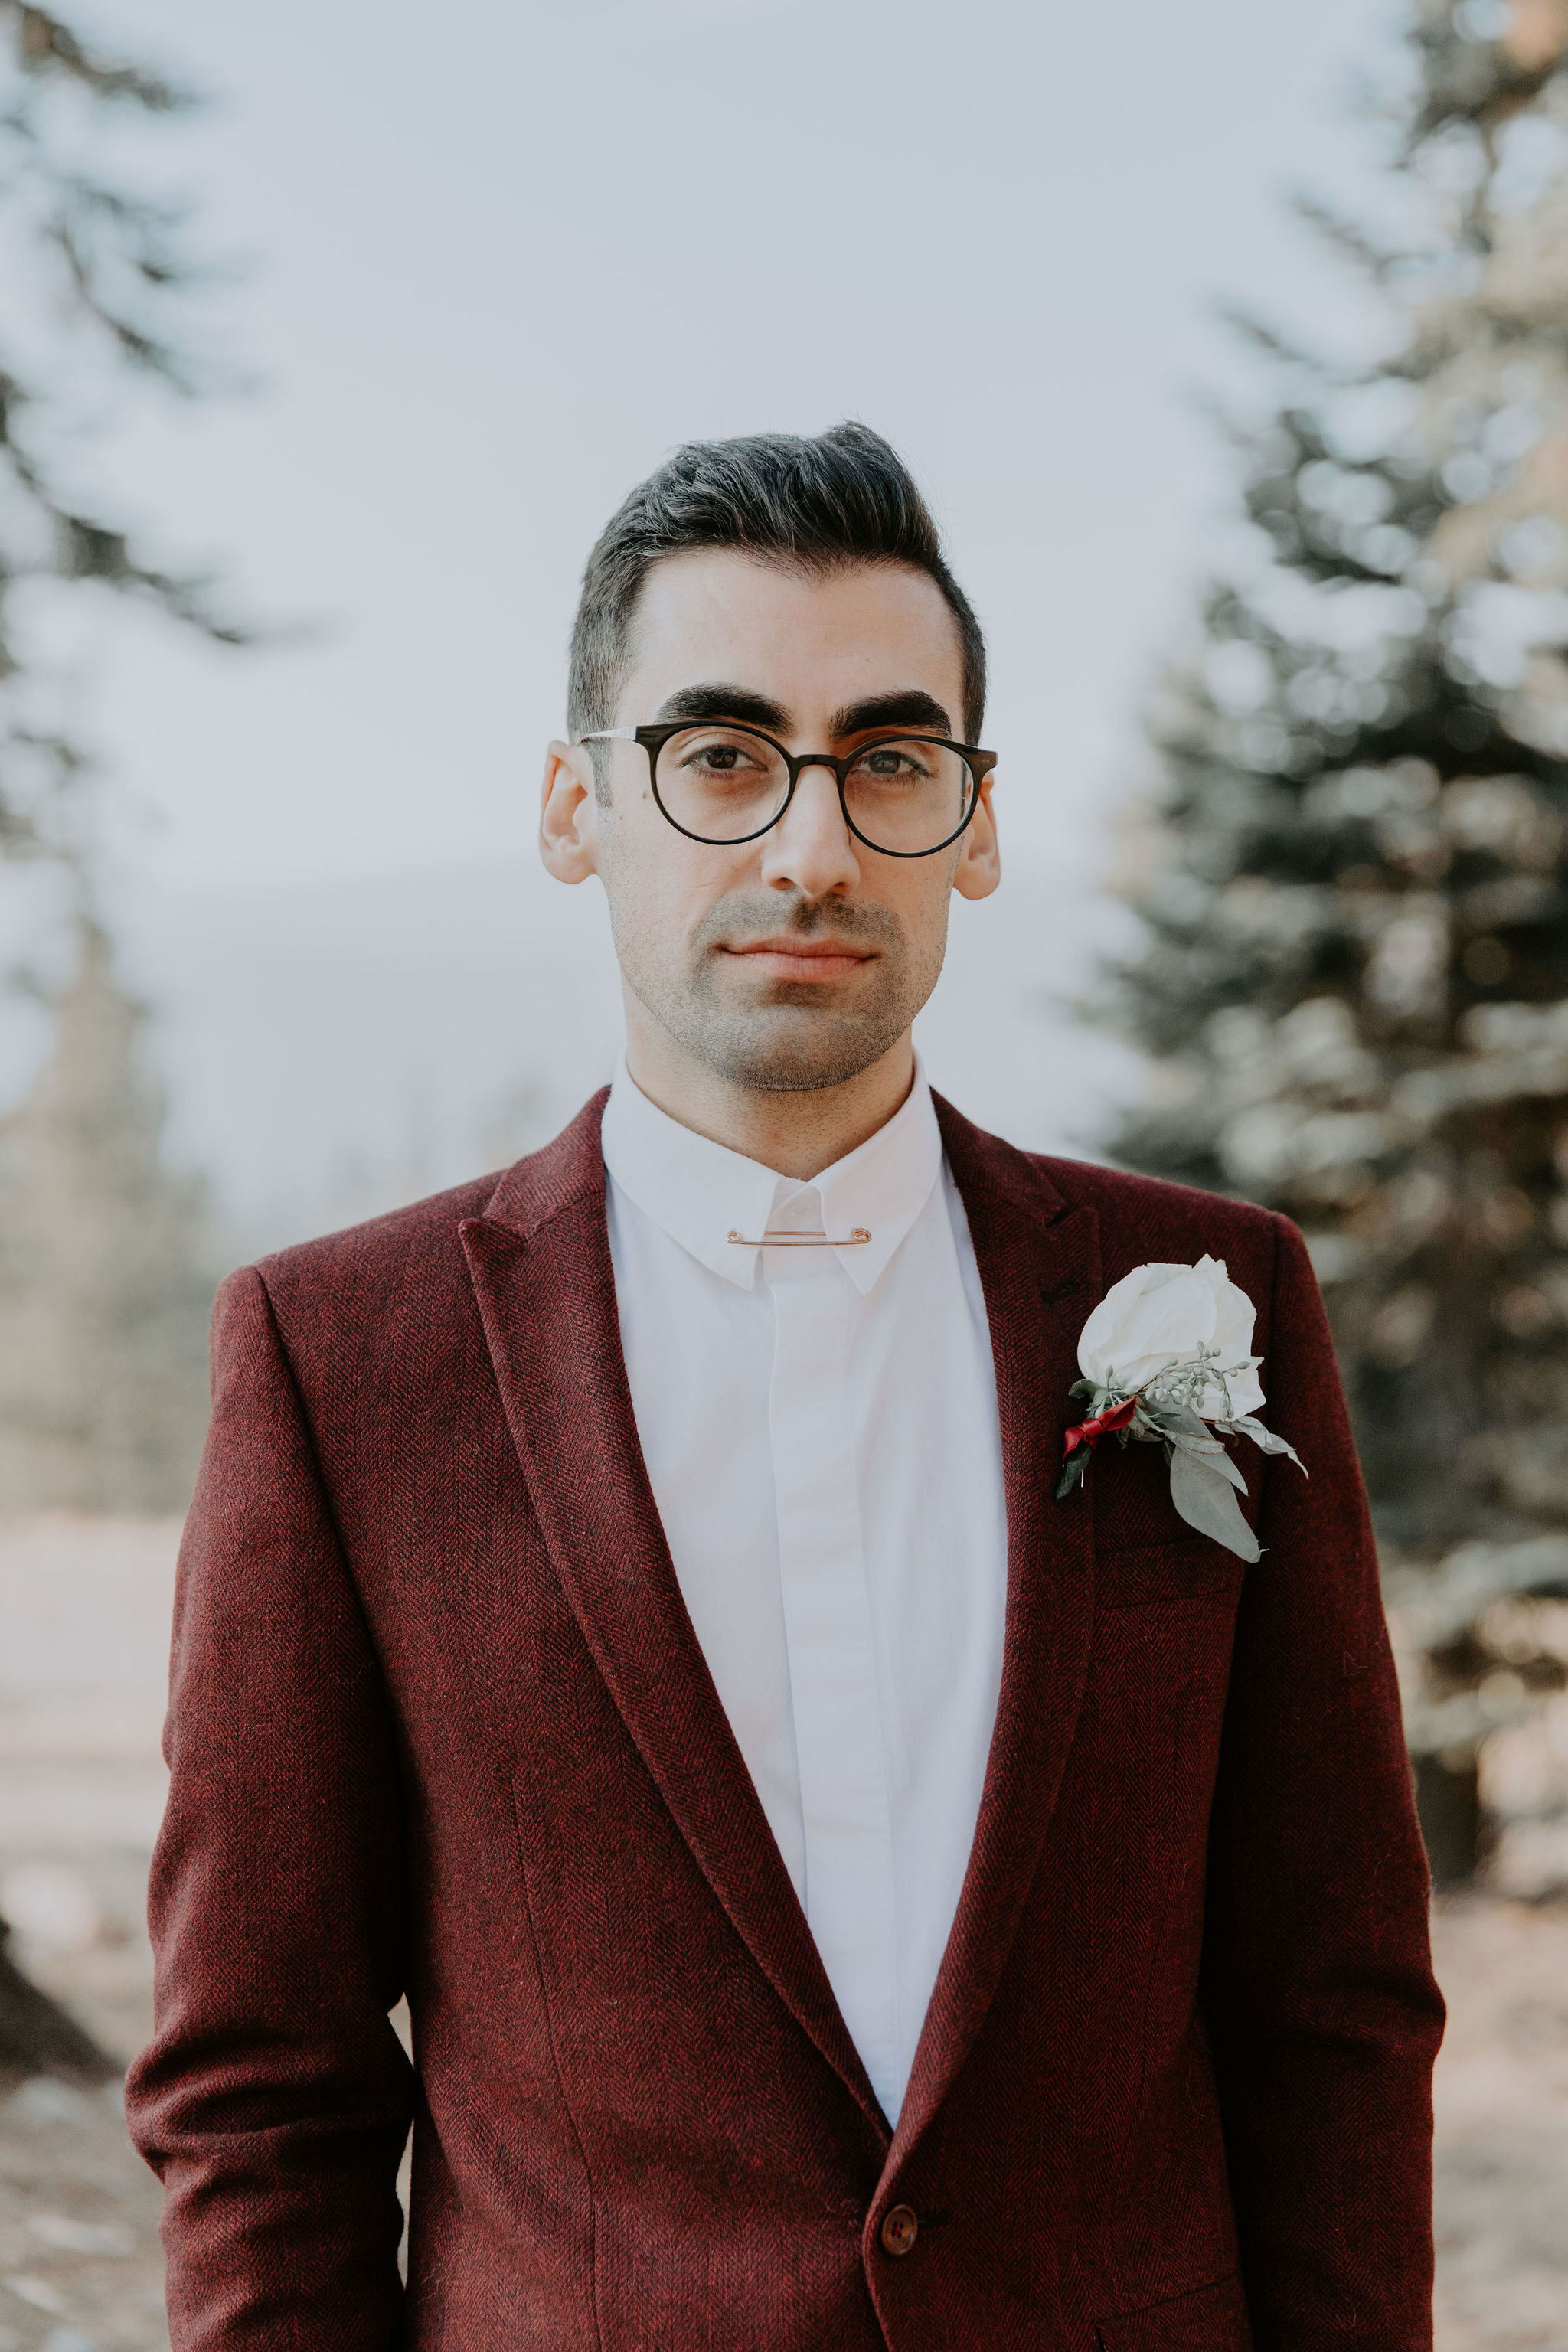 Yosemite National Park Elopement Groom Burgundy Suit  May Iosotaluno Photography